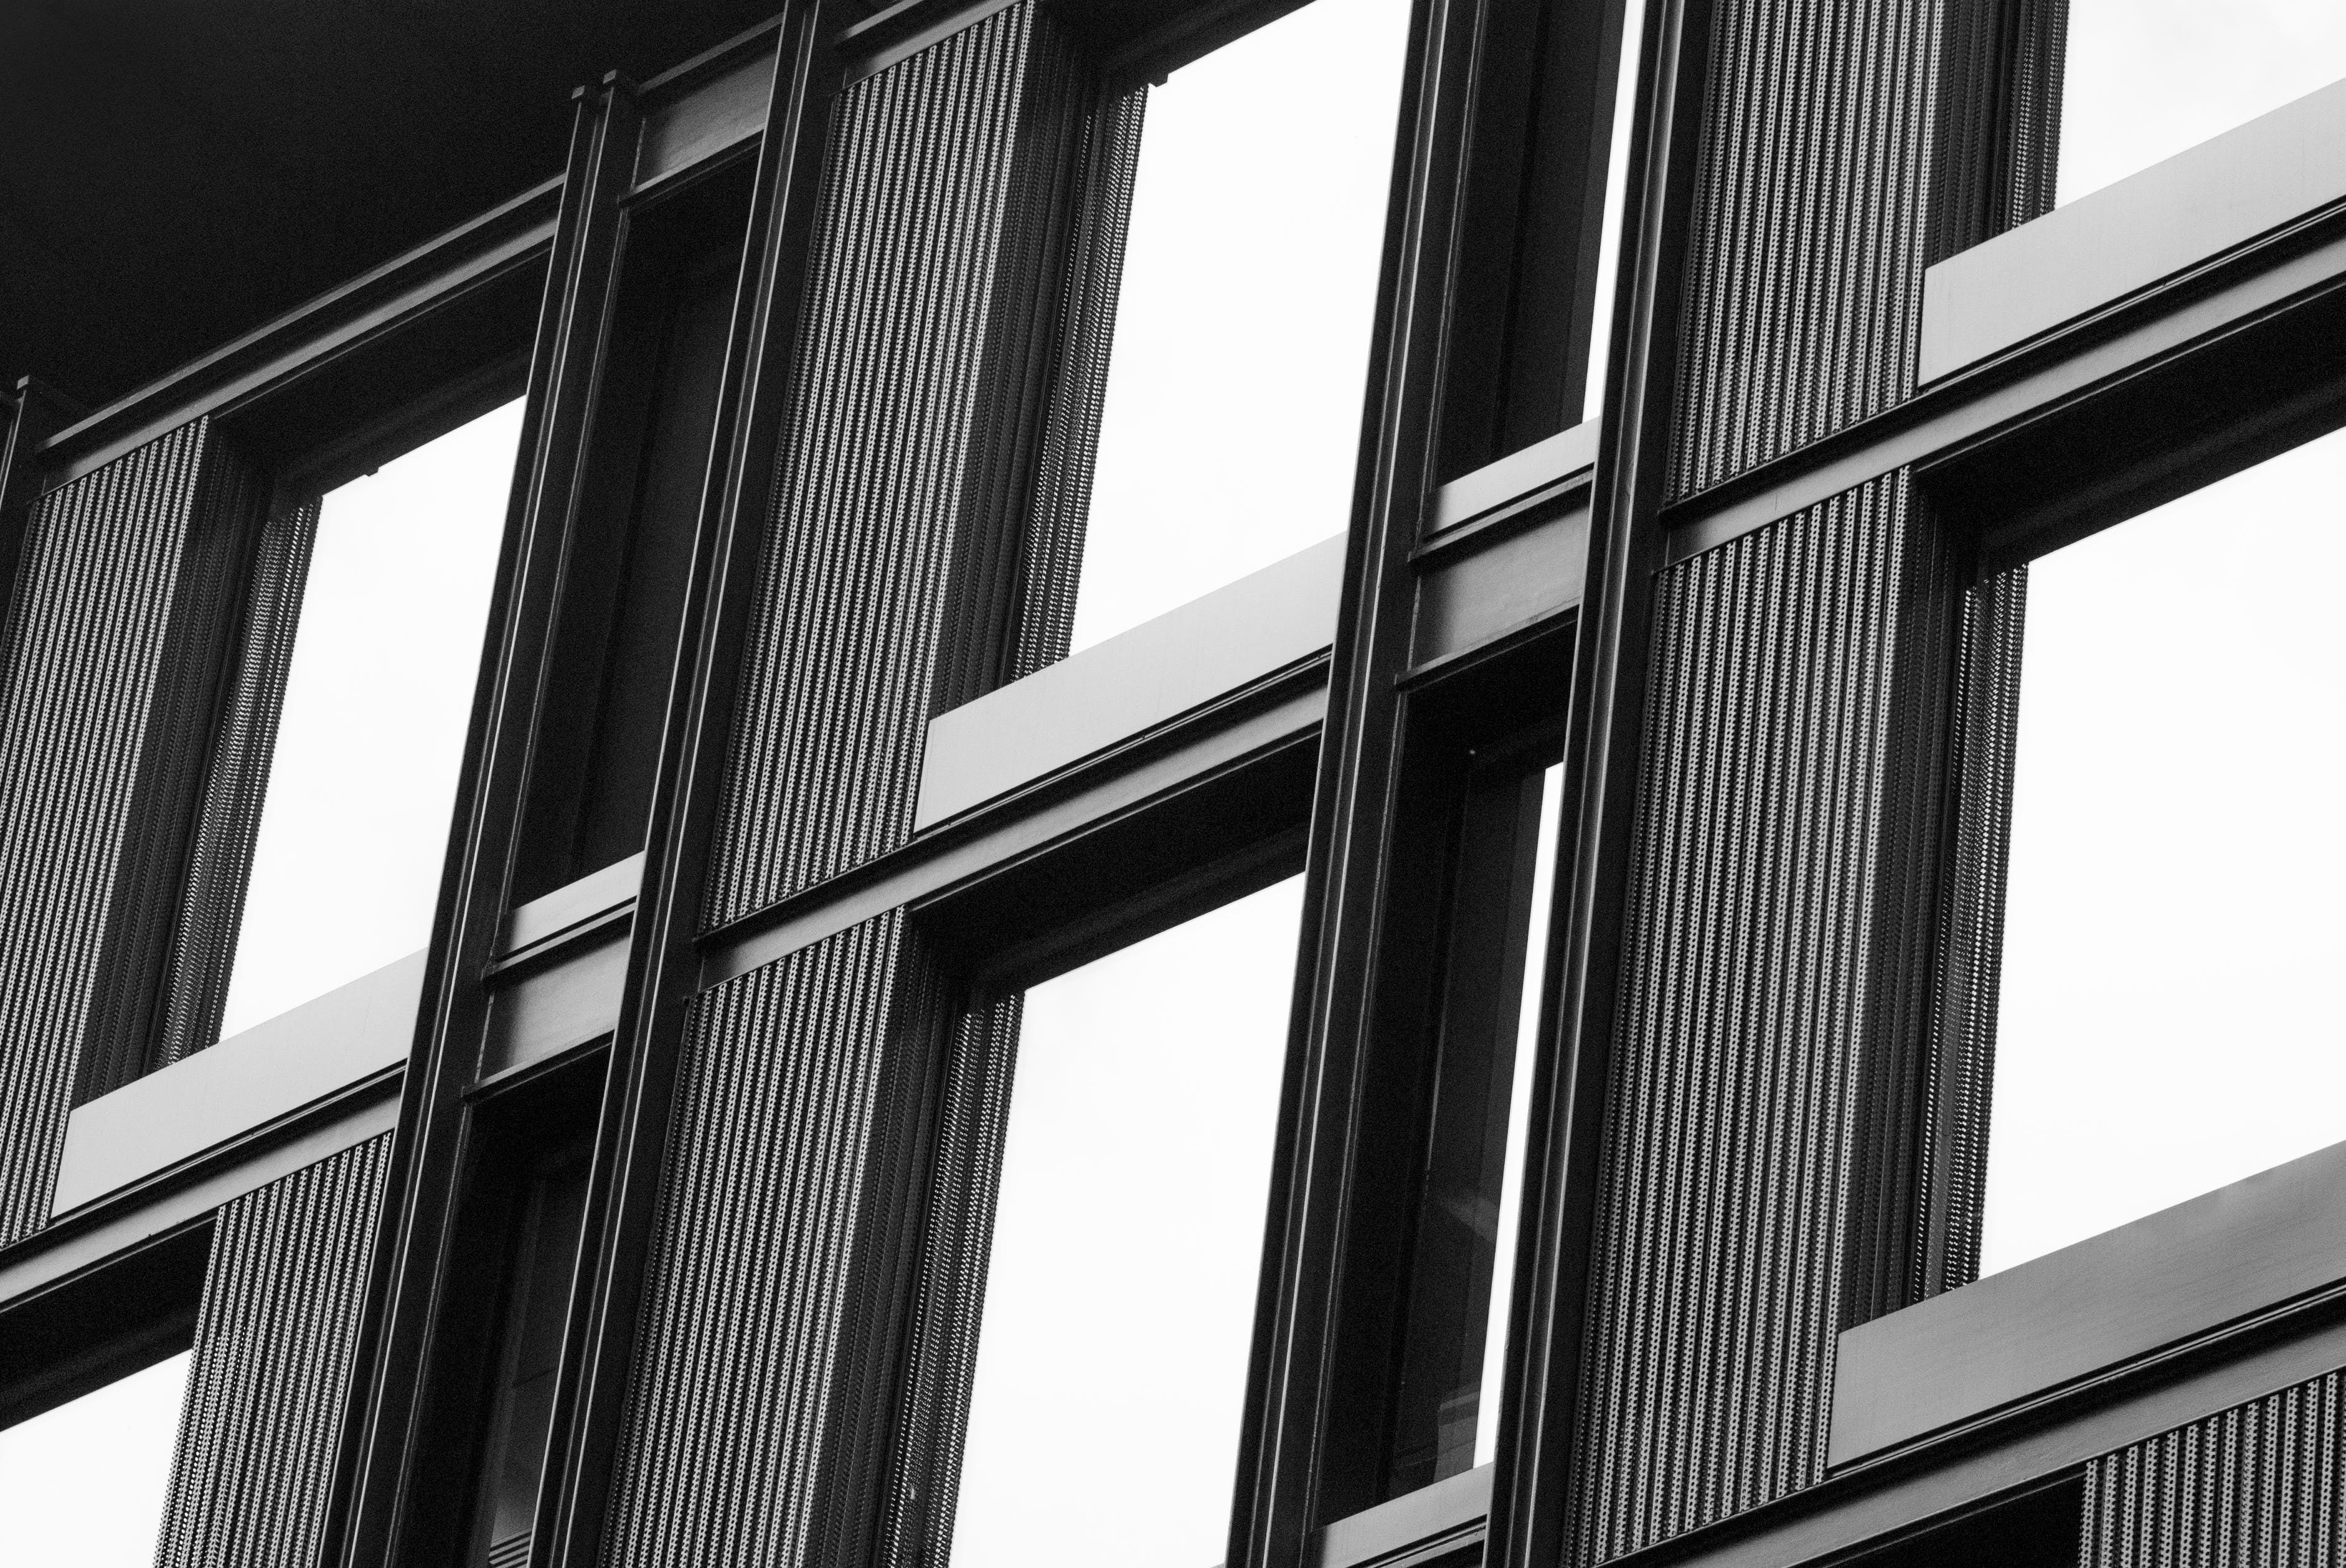 Free stock photo of architecture, black, black-and-white, building